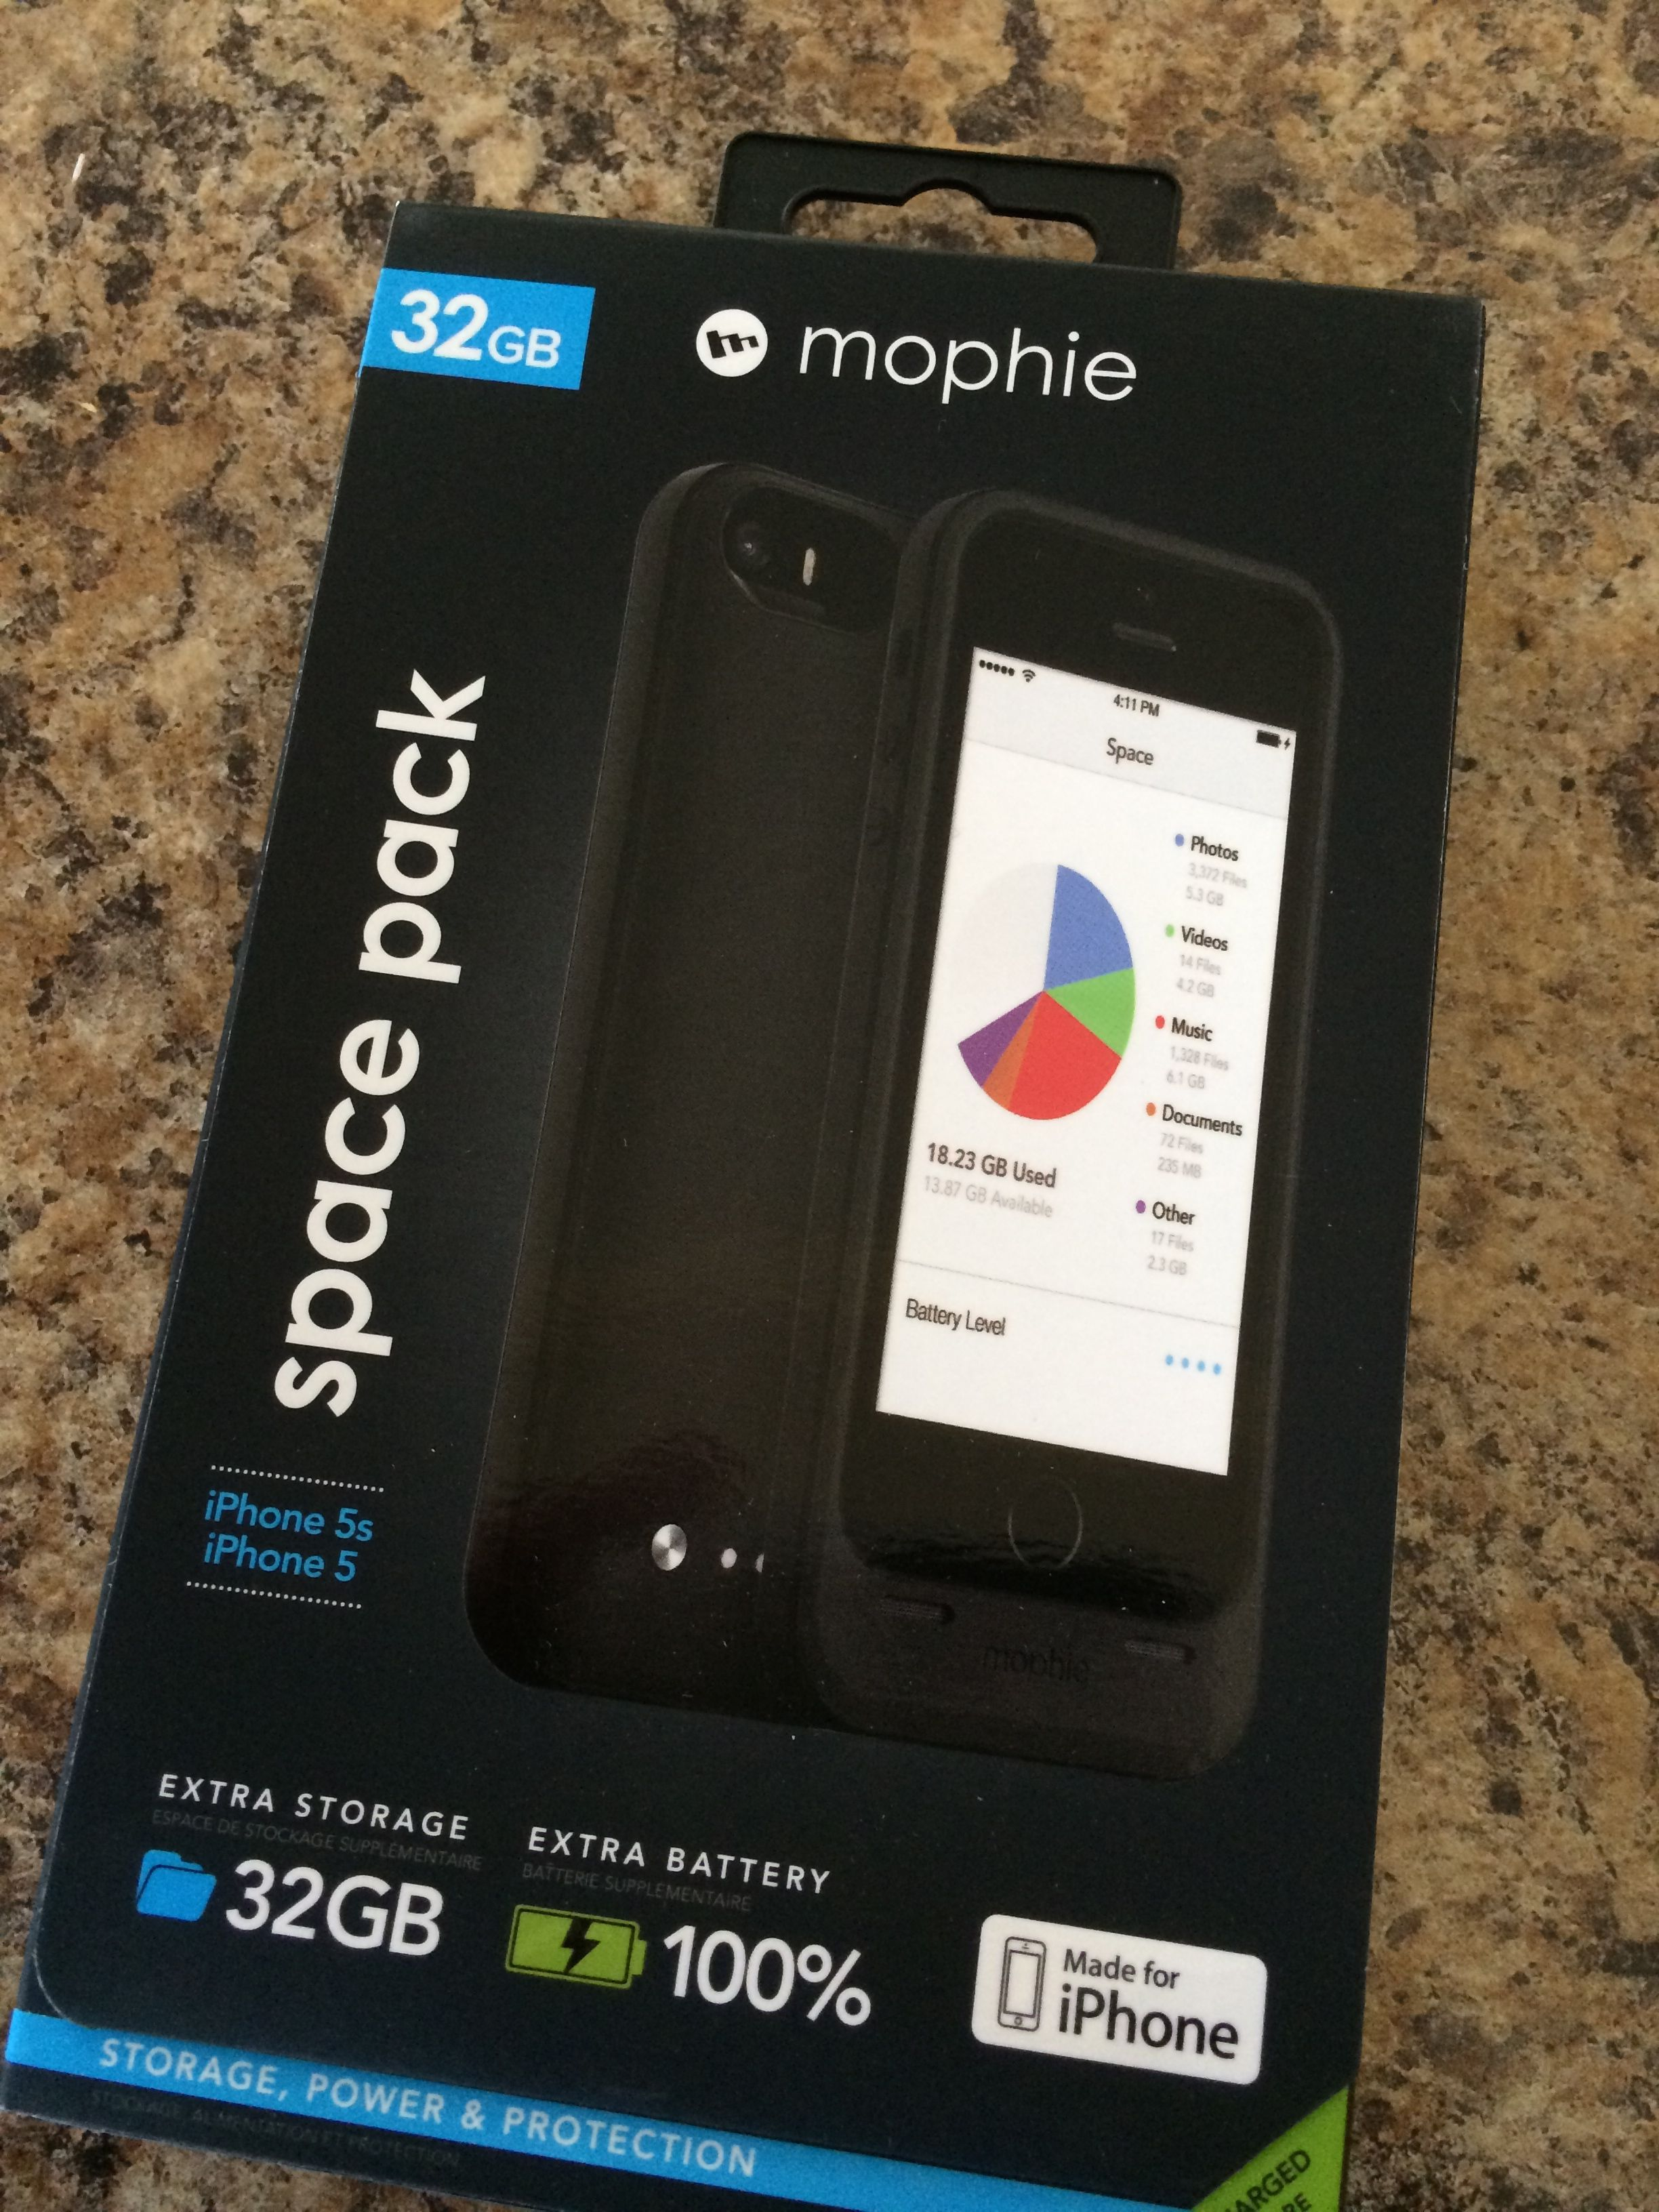 The First Mophie Space Pack Cases Are Arriving, Extends iPhone Memory Storage